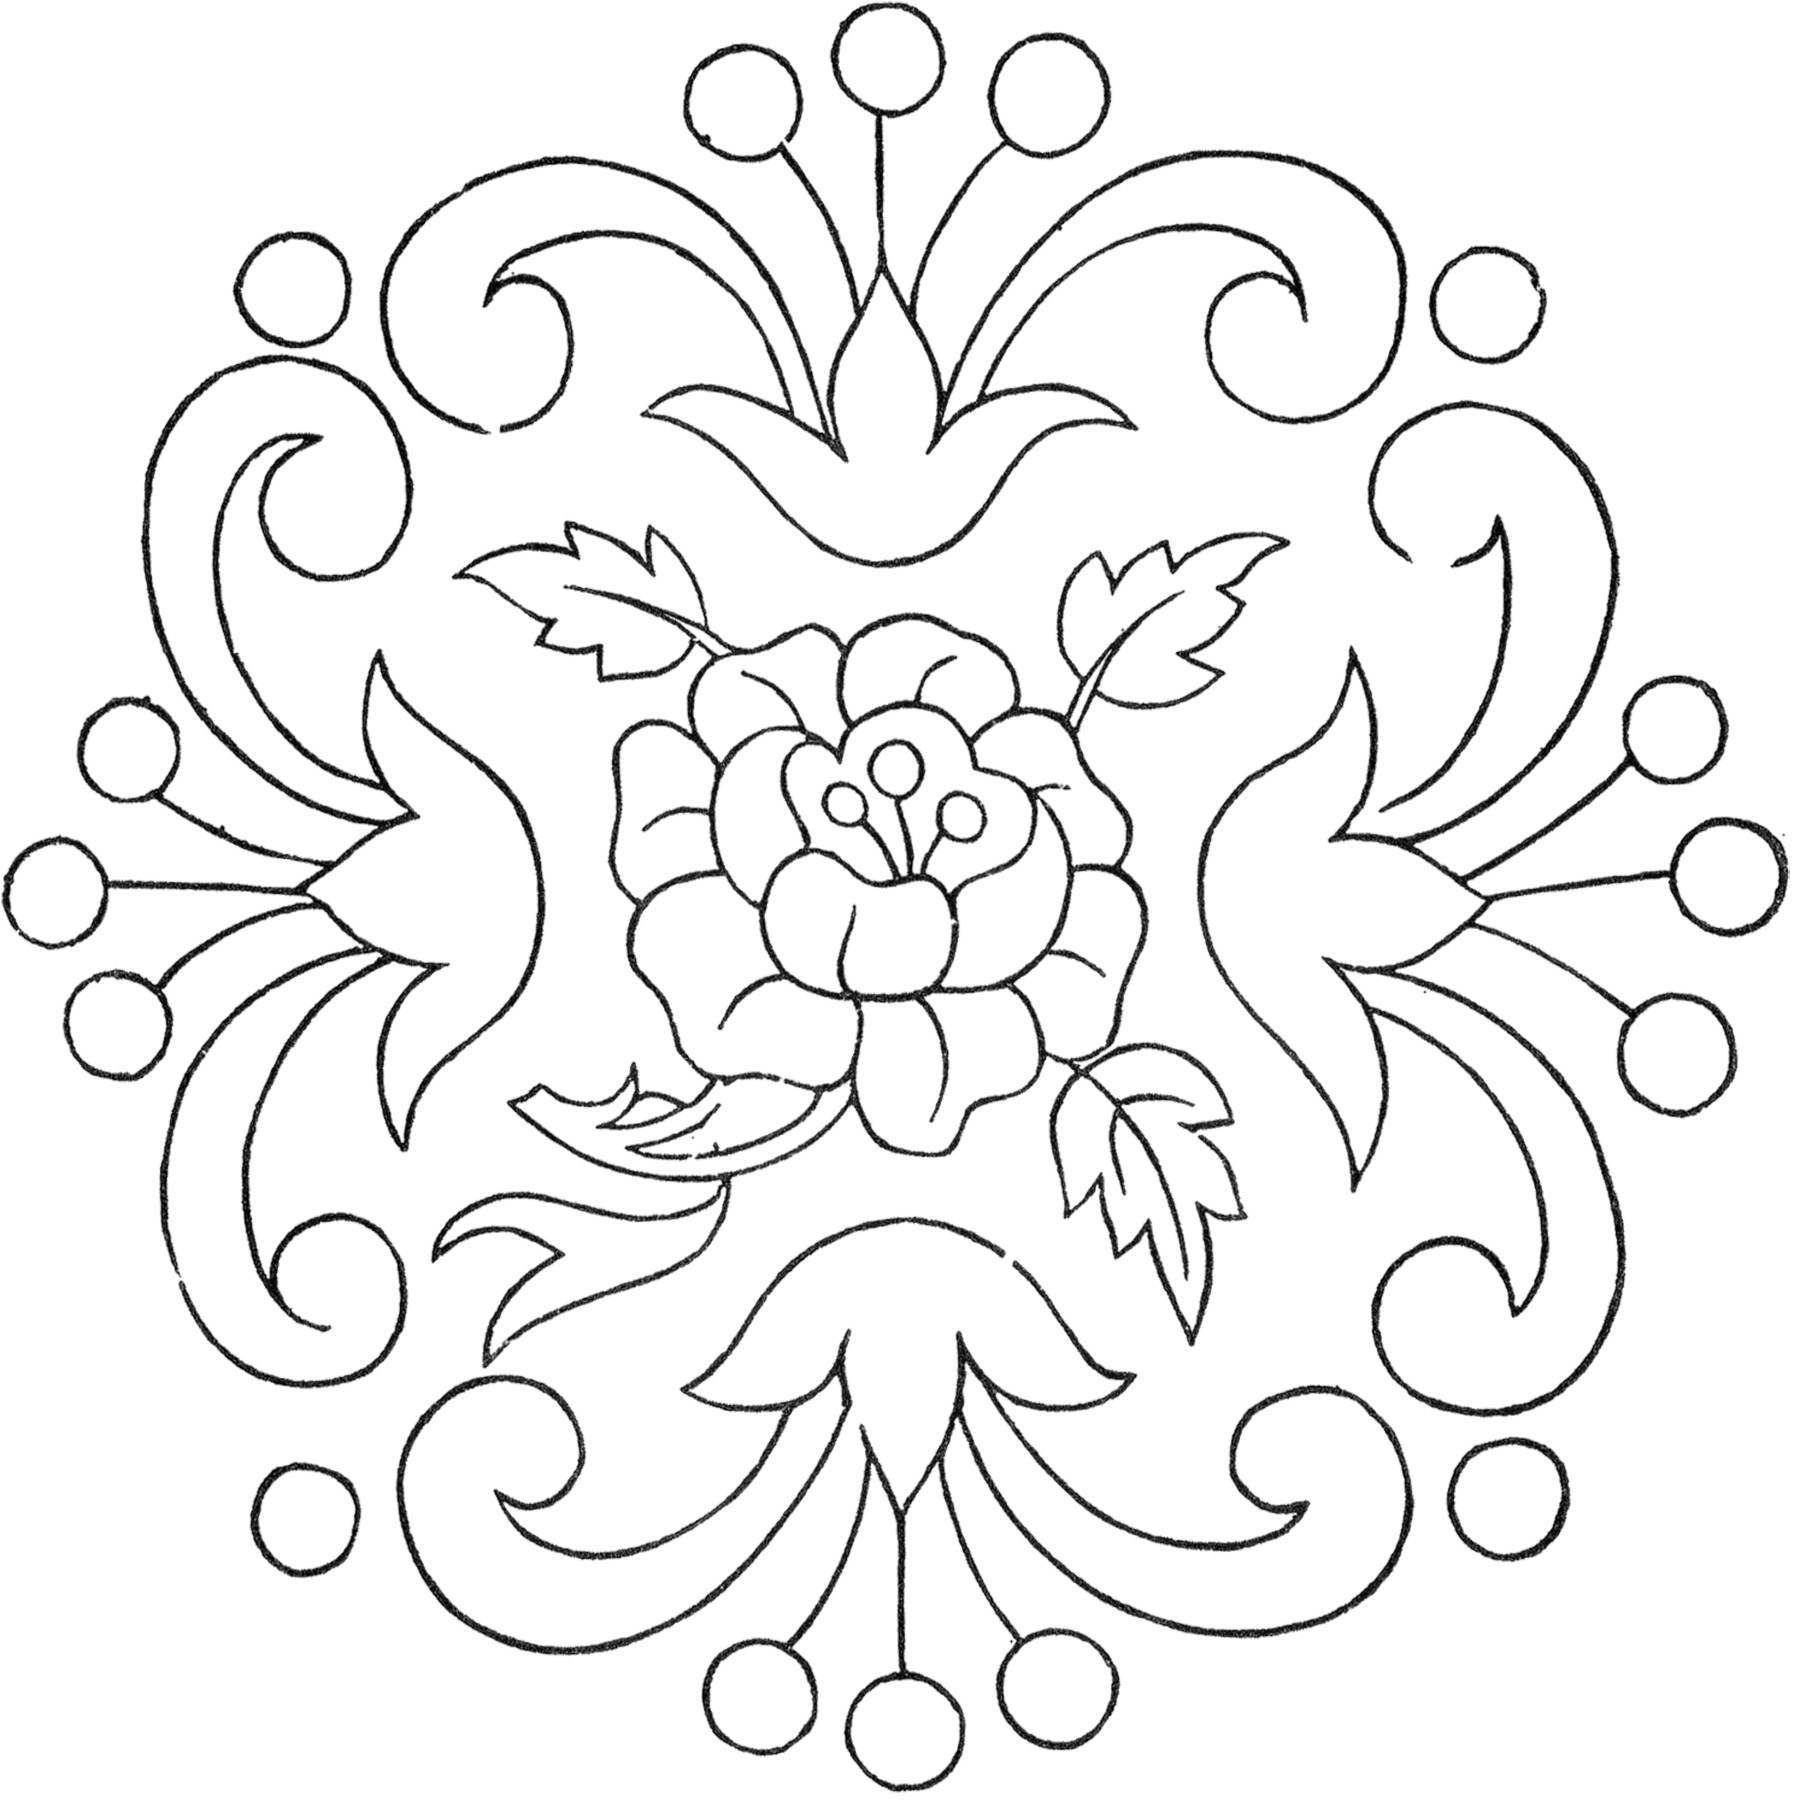 Line Art Embroidery : Vintage floral embroidery pattern the graphics fairy